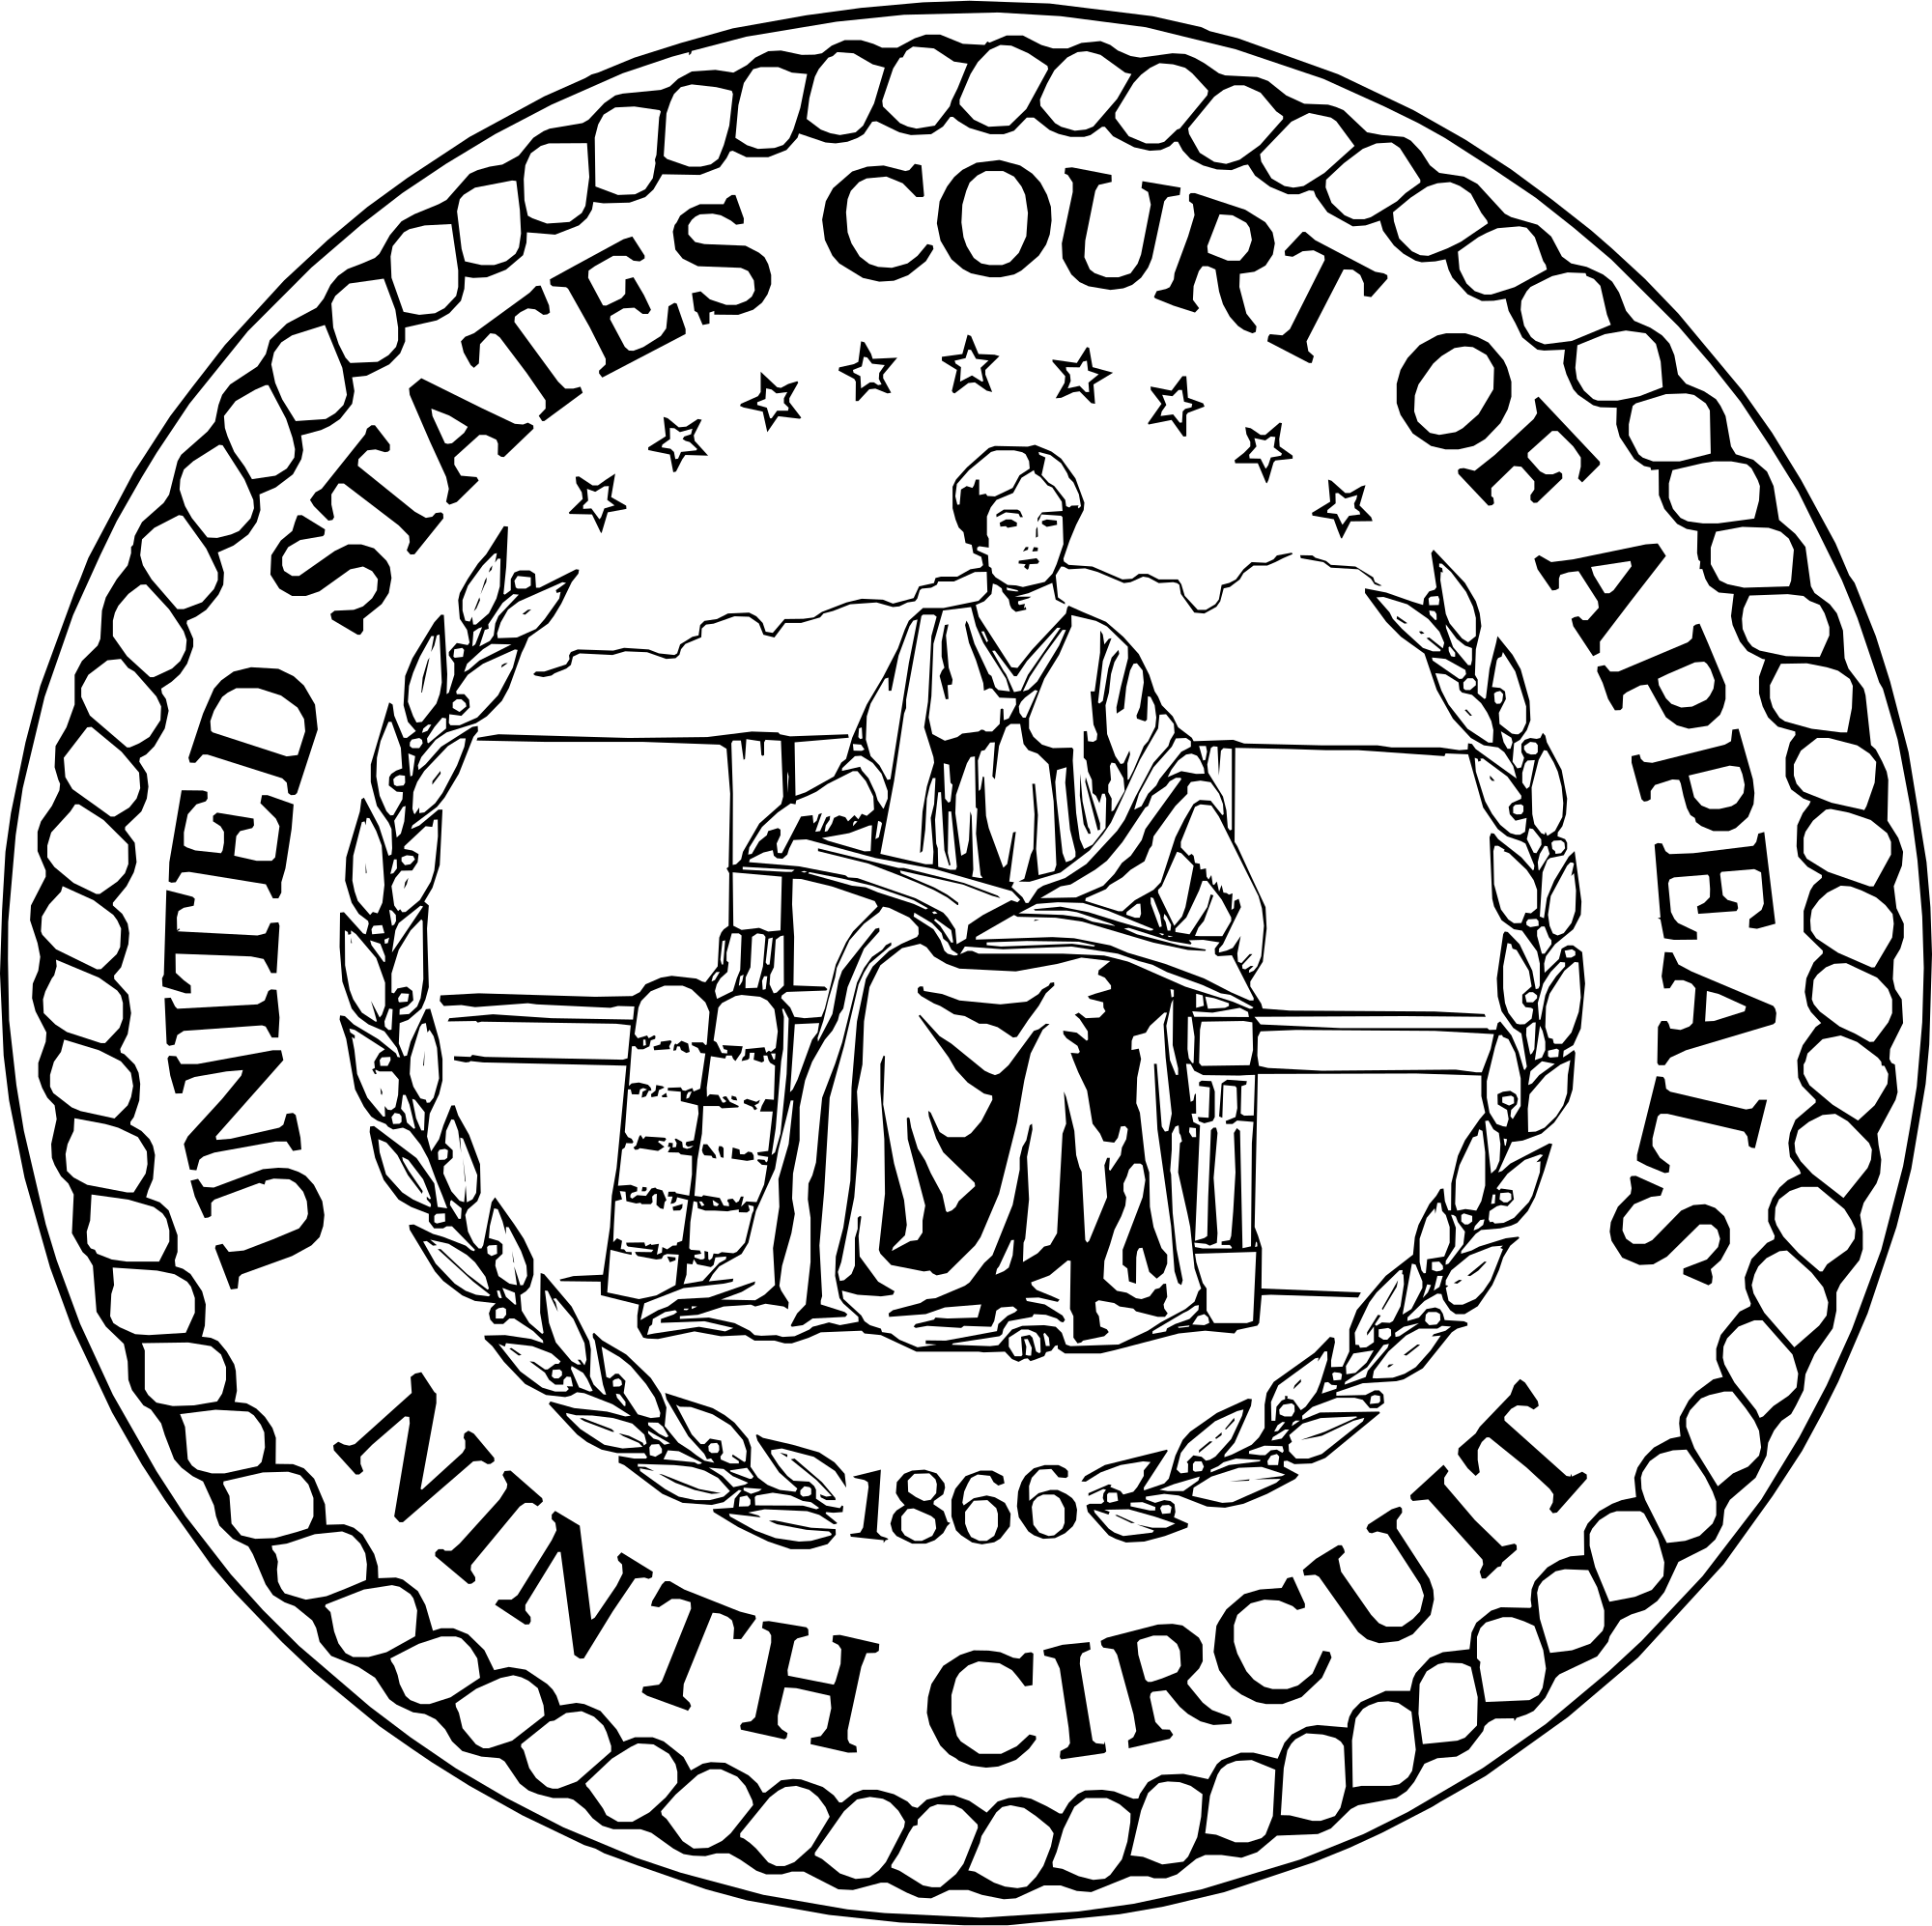 Court drawing bad. File seal of the